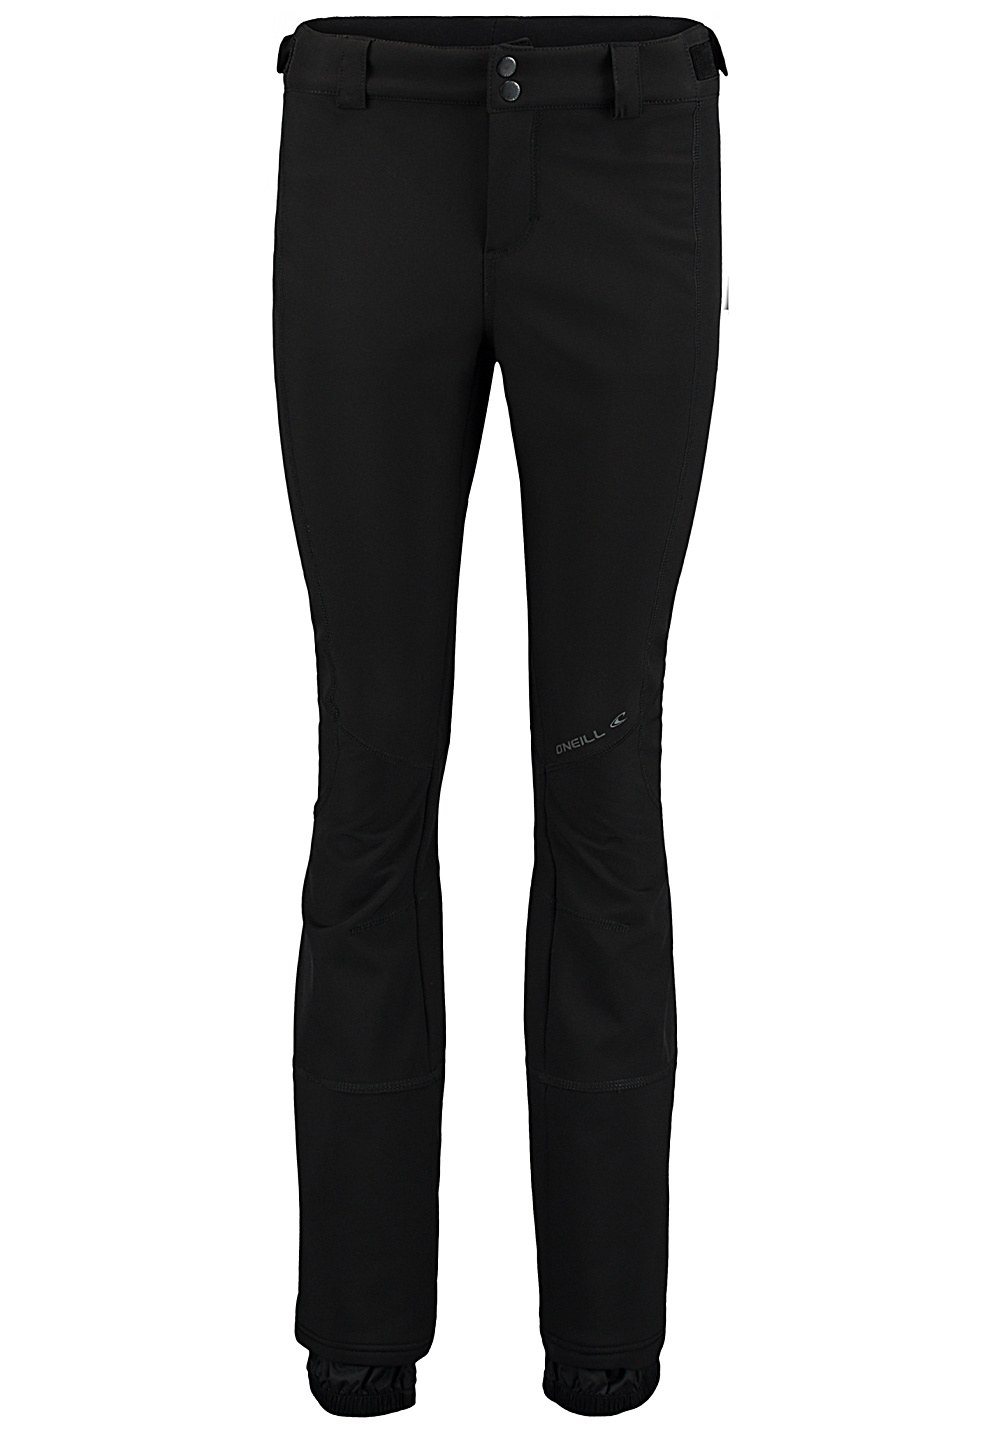 O Neill Blessed - Snowboard Pants for Women - Black - Planet Sports 978602043240